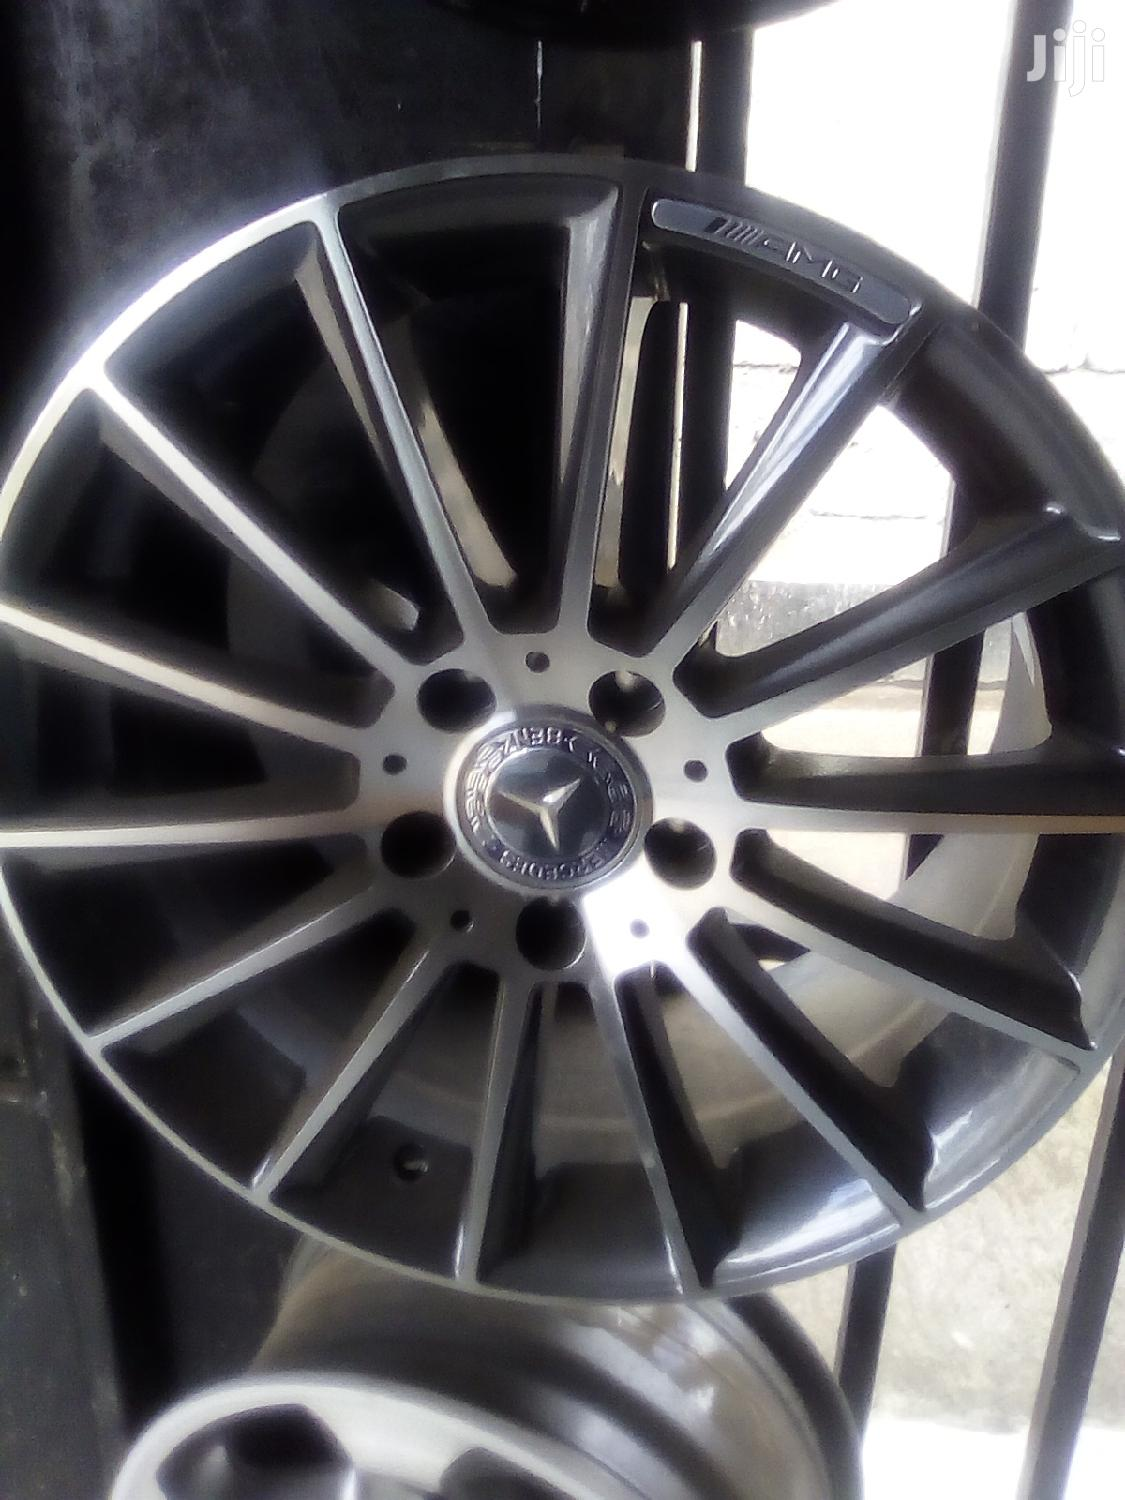 17 Inches Mercedes Benz Rims for Sale | Vehicle Parts & Accessories for sale in Langata, Nairobi, Kenya